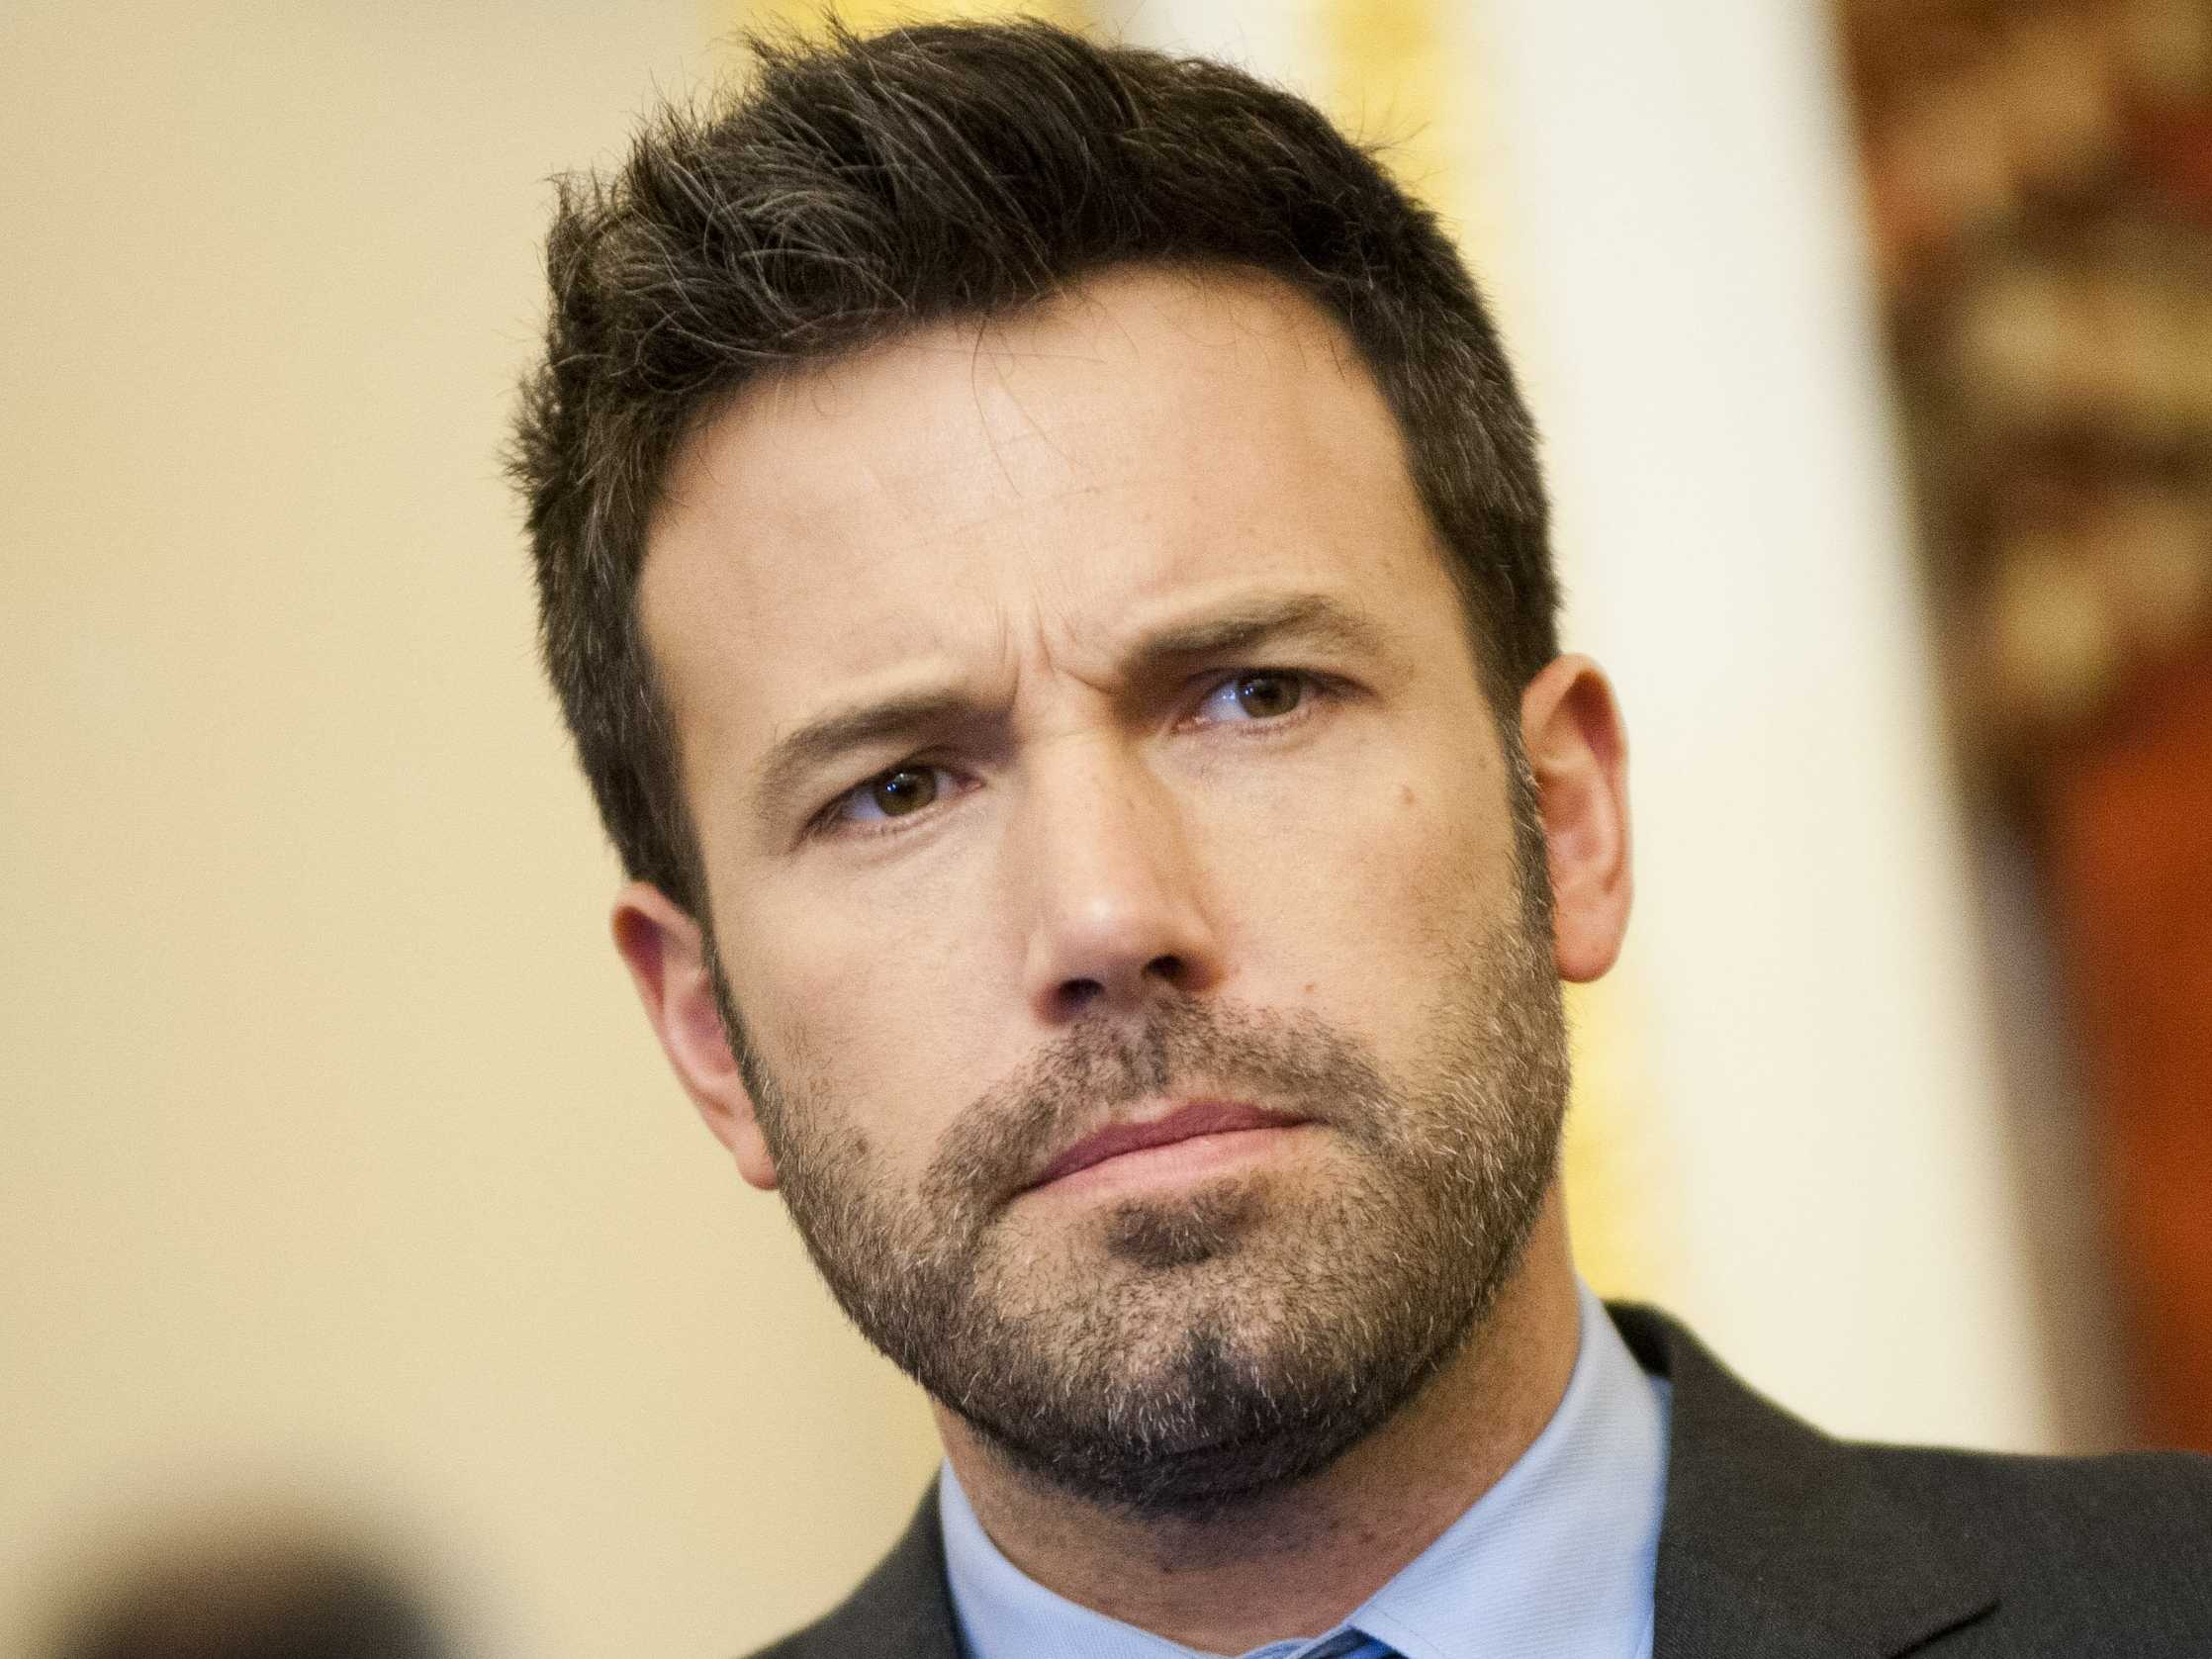 Ben Affleck Net Worth, Age, Height, Wife, Profile, Movies